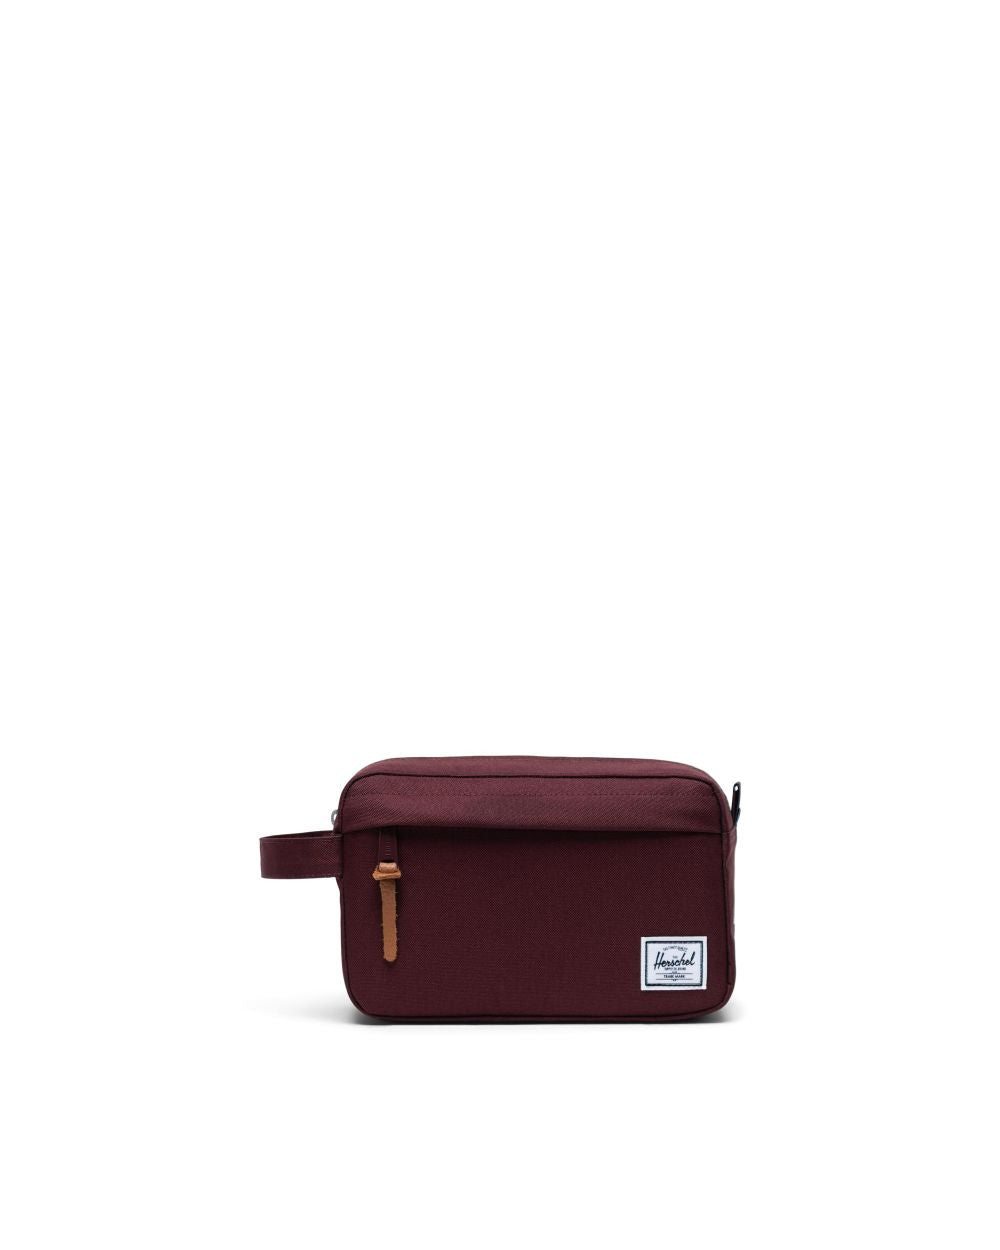 HERSCHEL BAGS Default CHAPTER TRAVEL KIT - PLUM